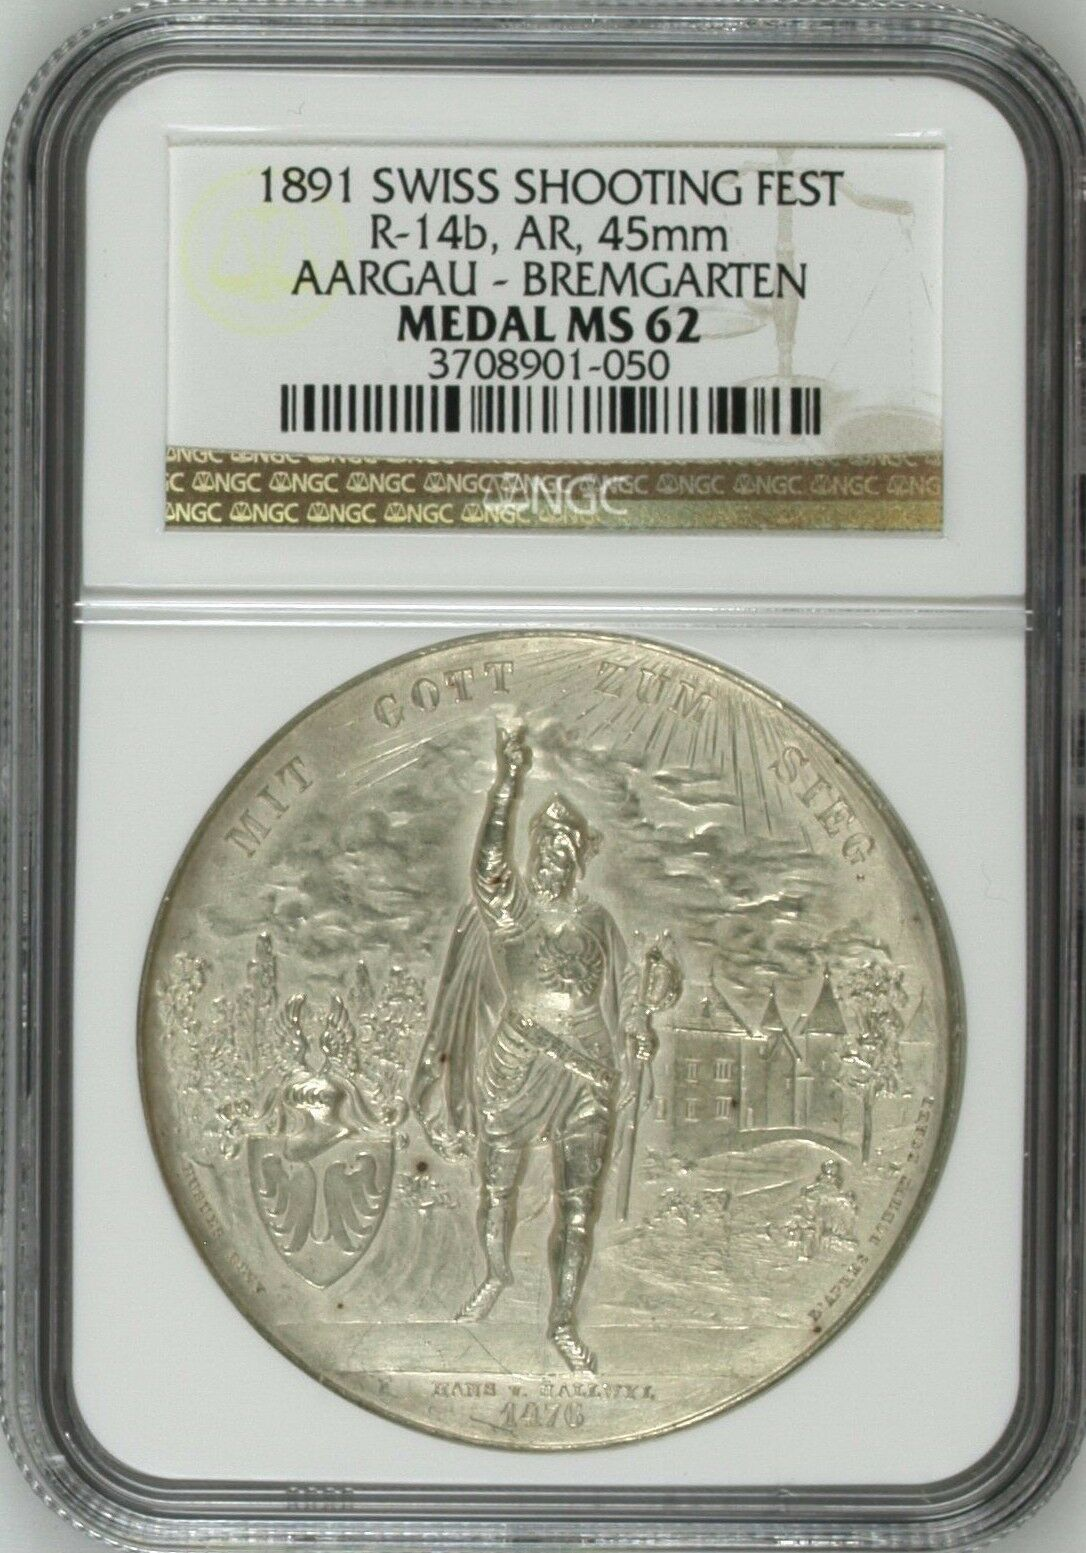 Swiss 1891 Silver Shooting Medal Aargau Bremgarten Switzerland R-14b NGC MS62